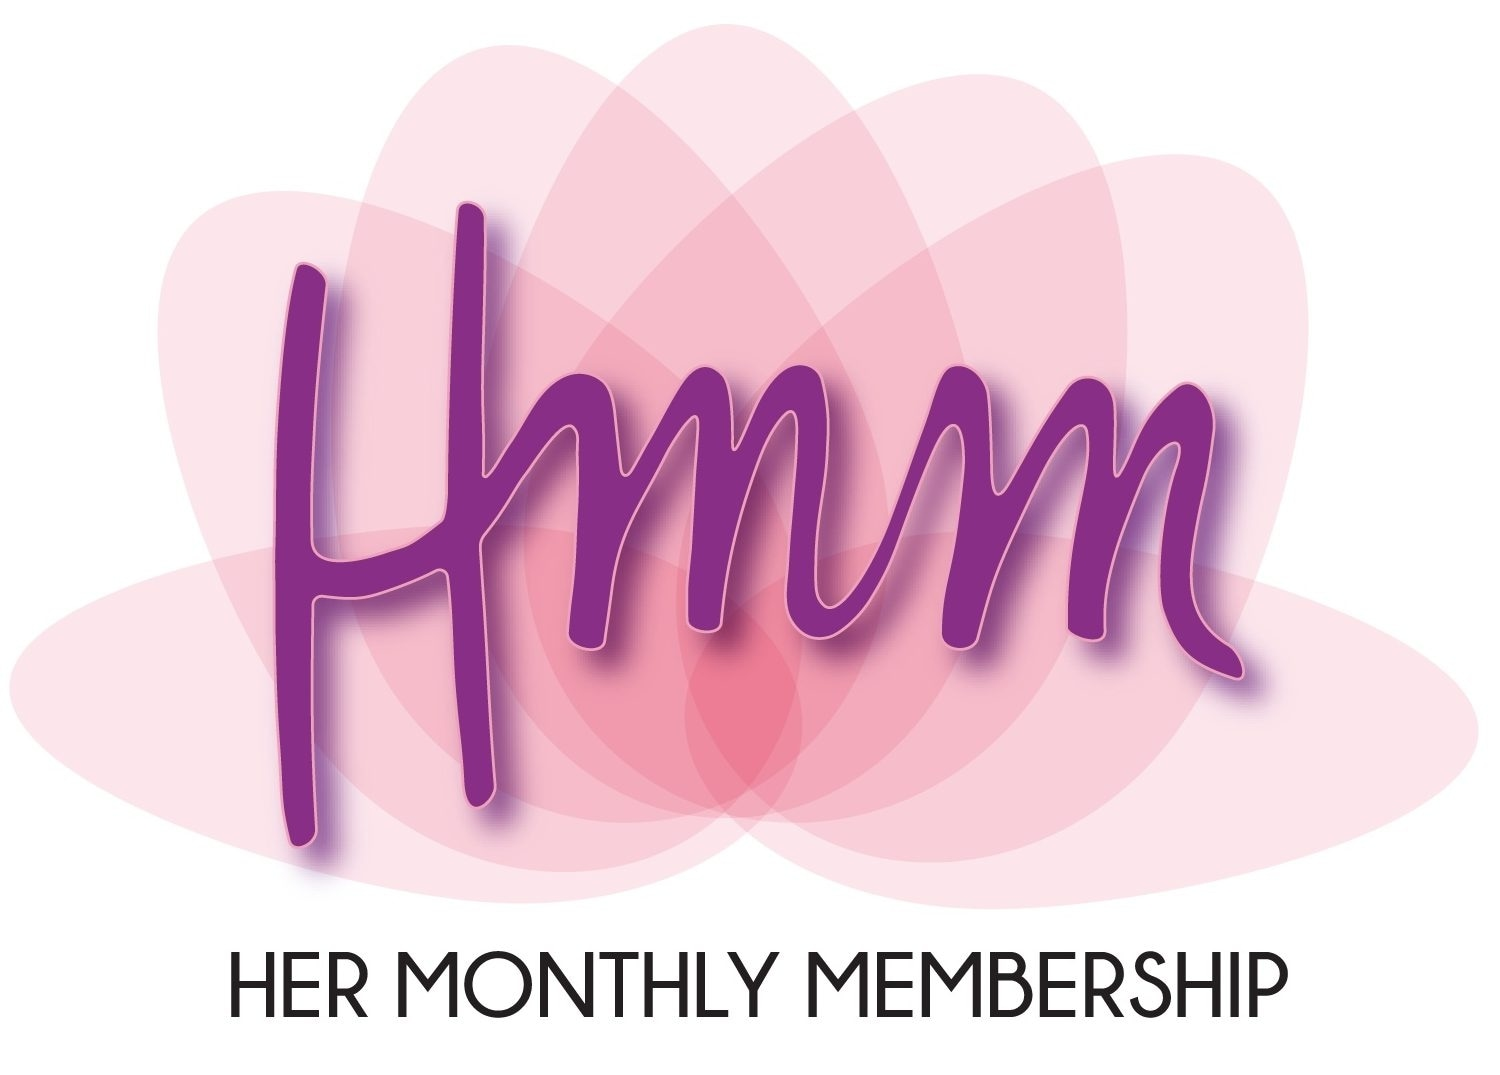 Her Monthly Membership